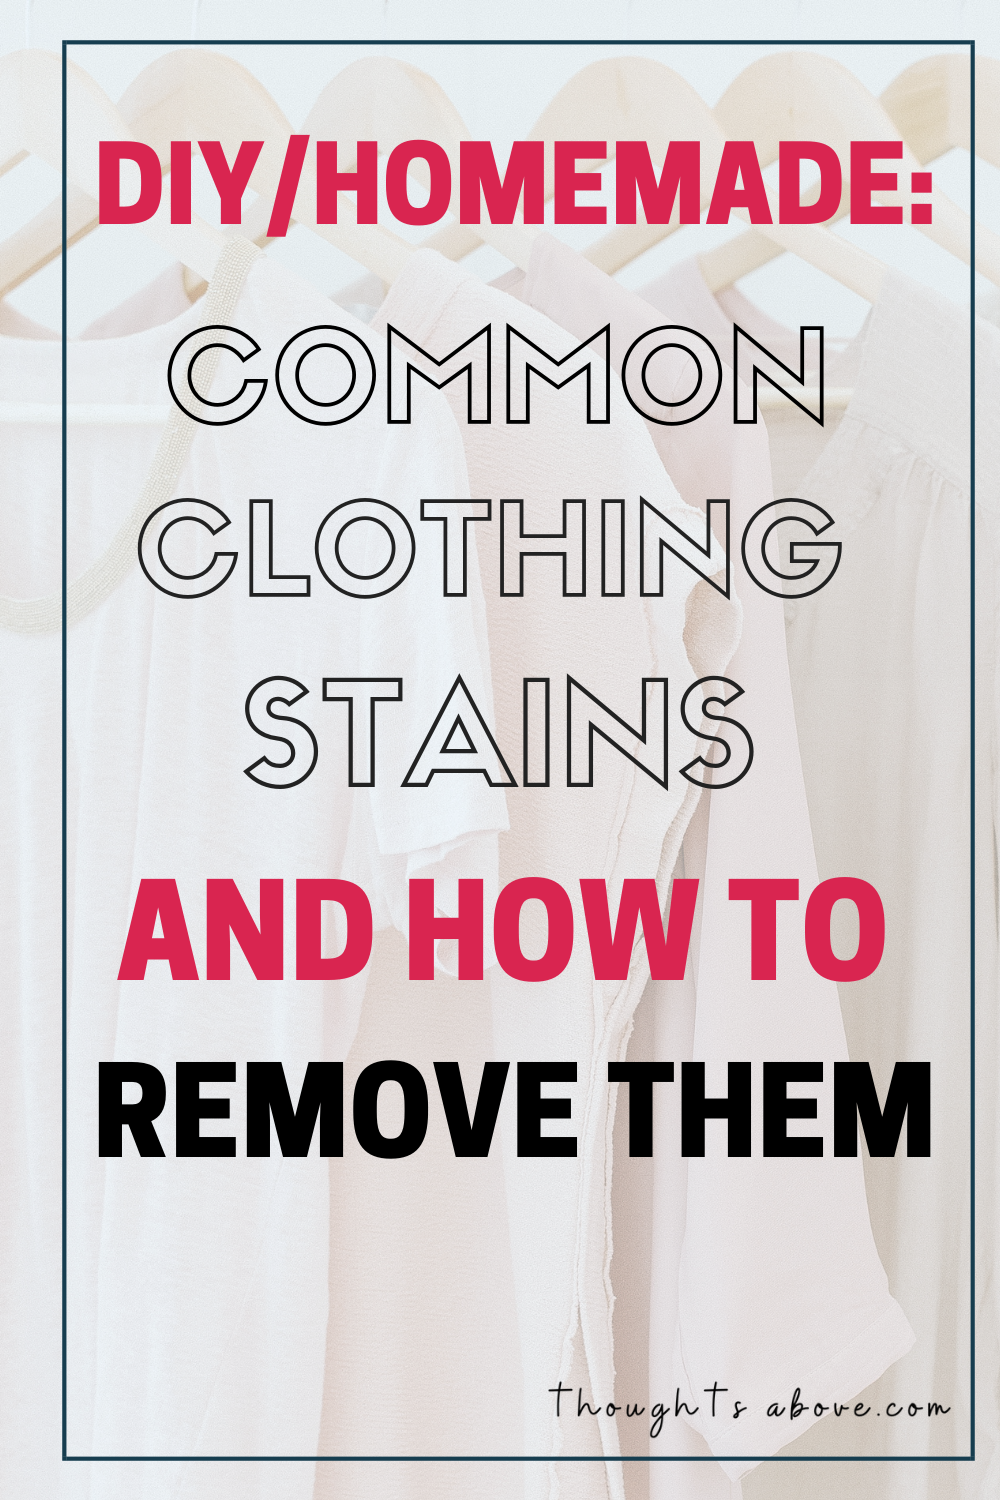 DIY/Homemade Common Clothing Stains and How to Remove